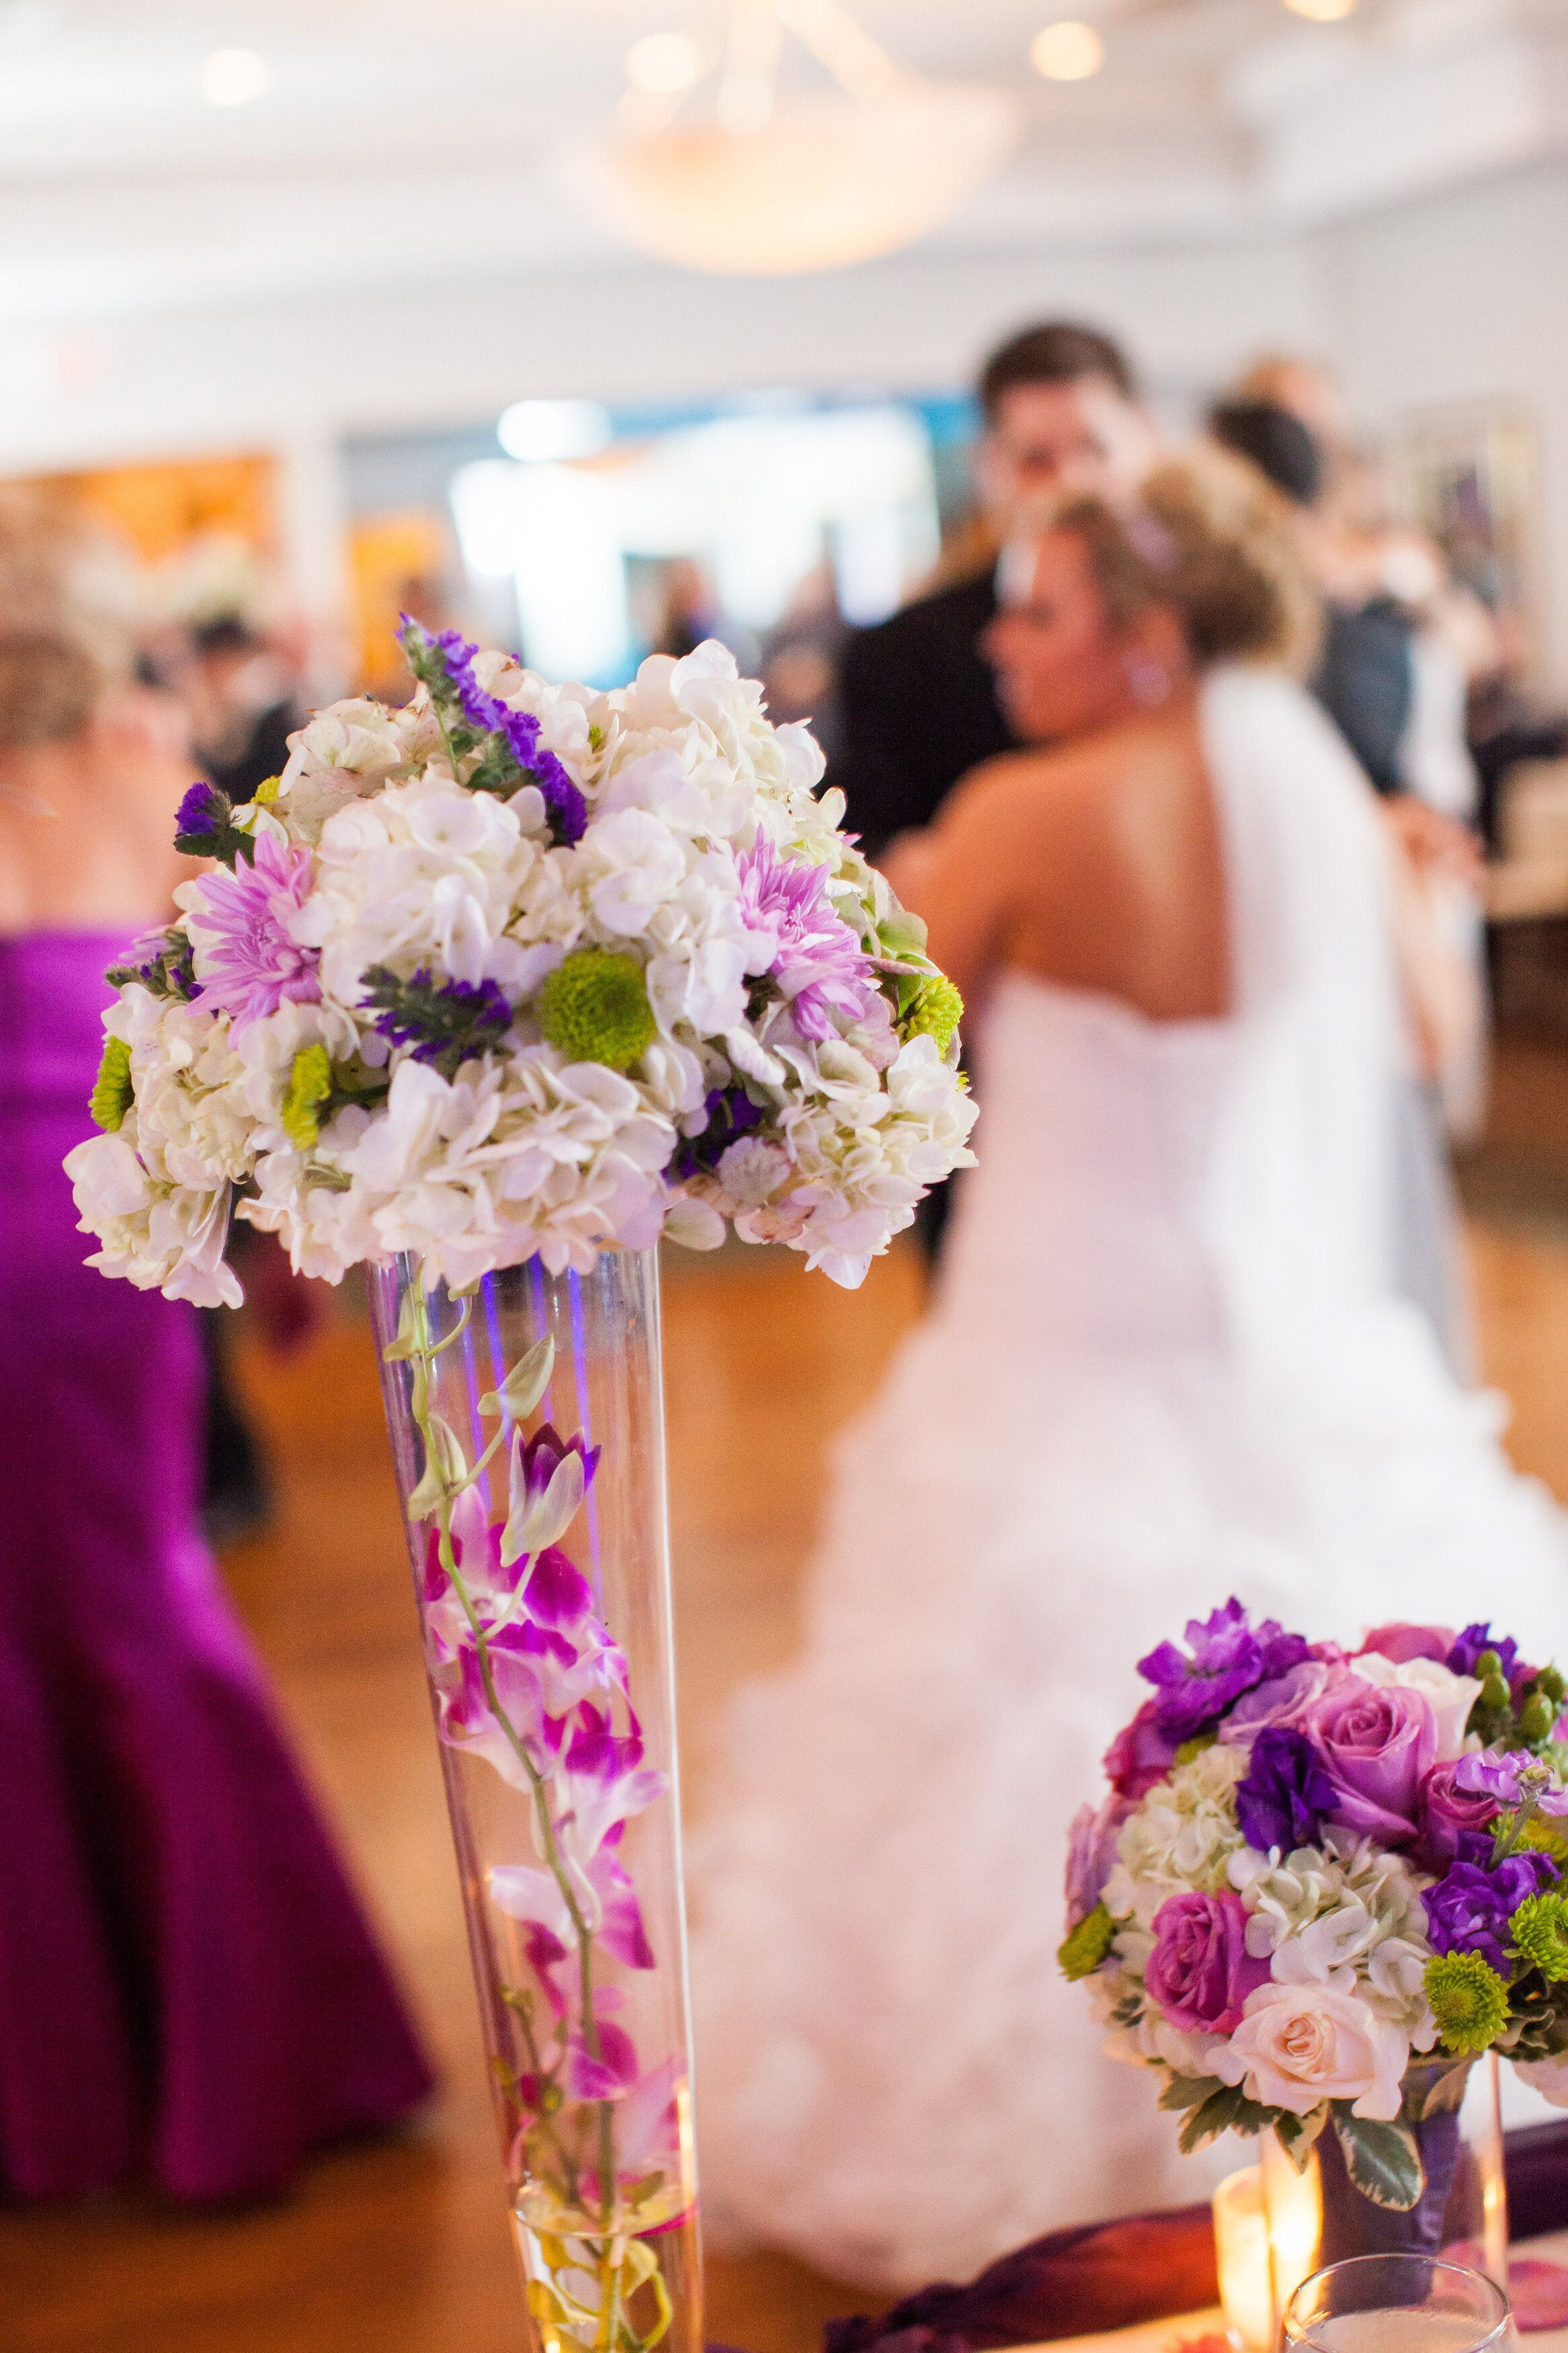 Tall Purple And Ivory Flower Arrangements With Orchid Vases